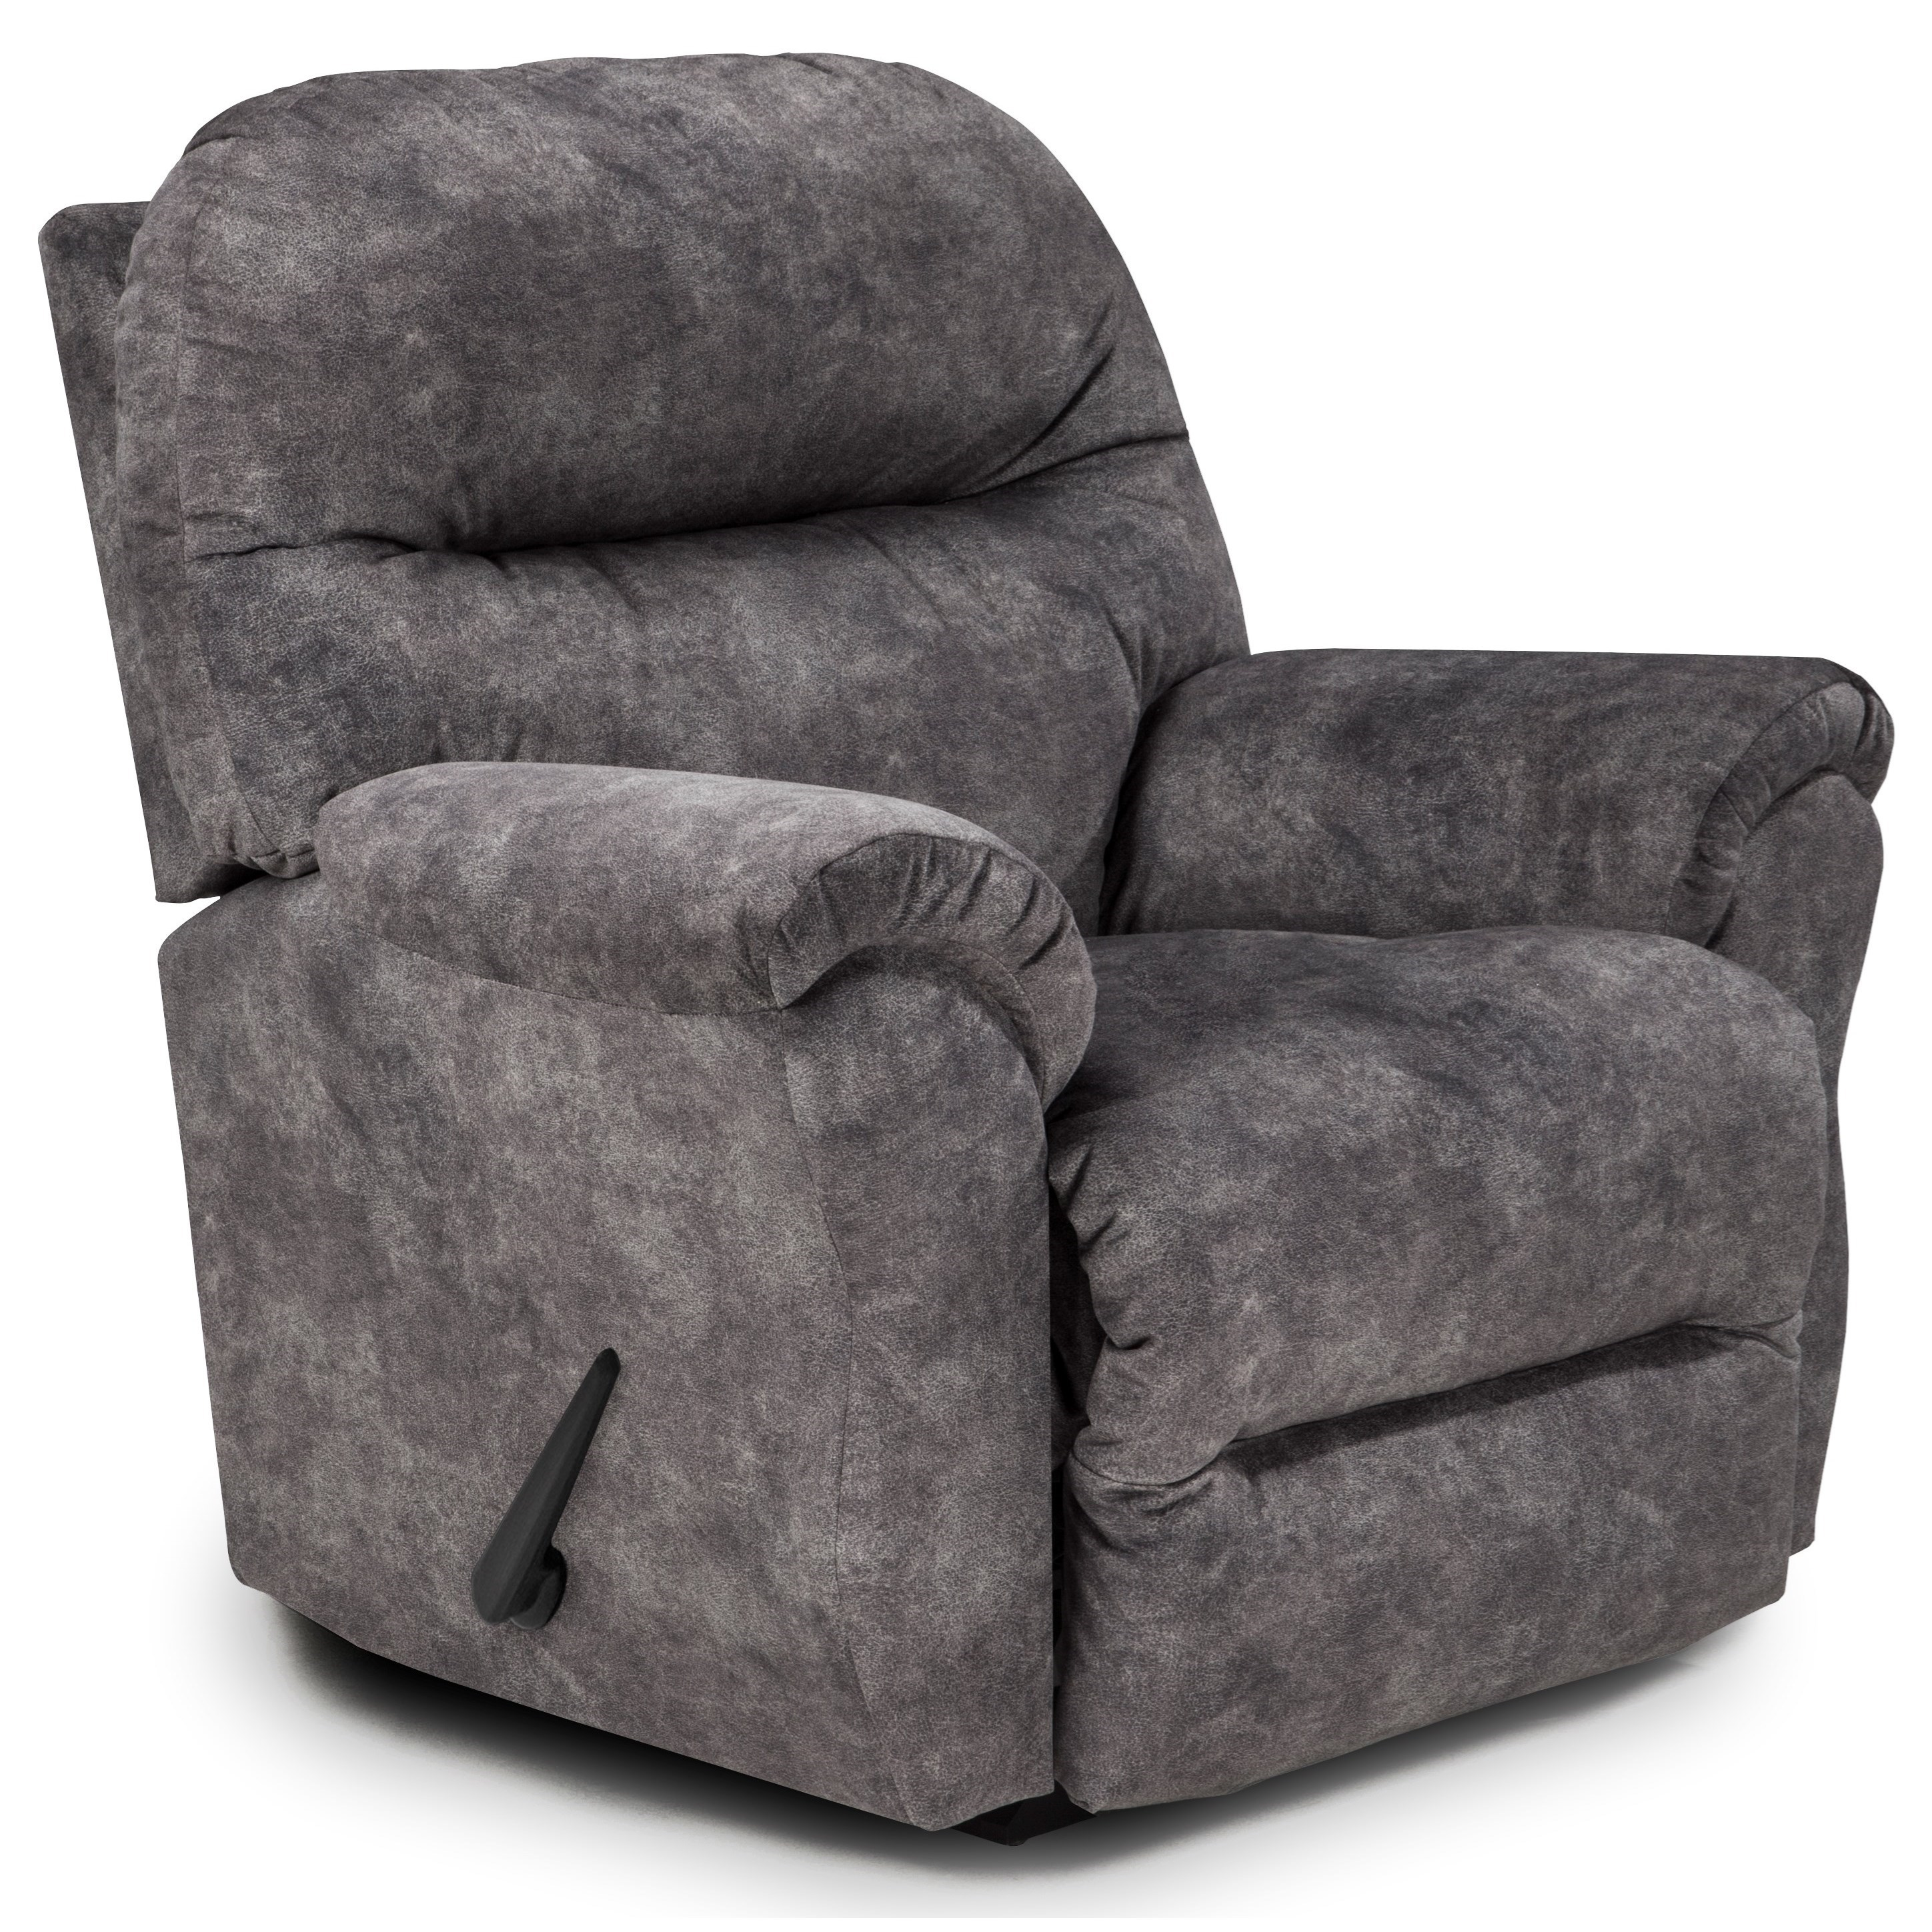 Bodie Recliner by Best Home Furnishings at Best Home Furnishings